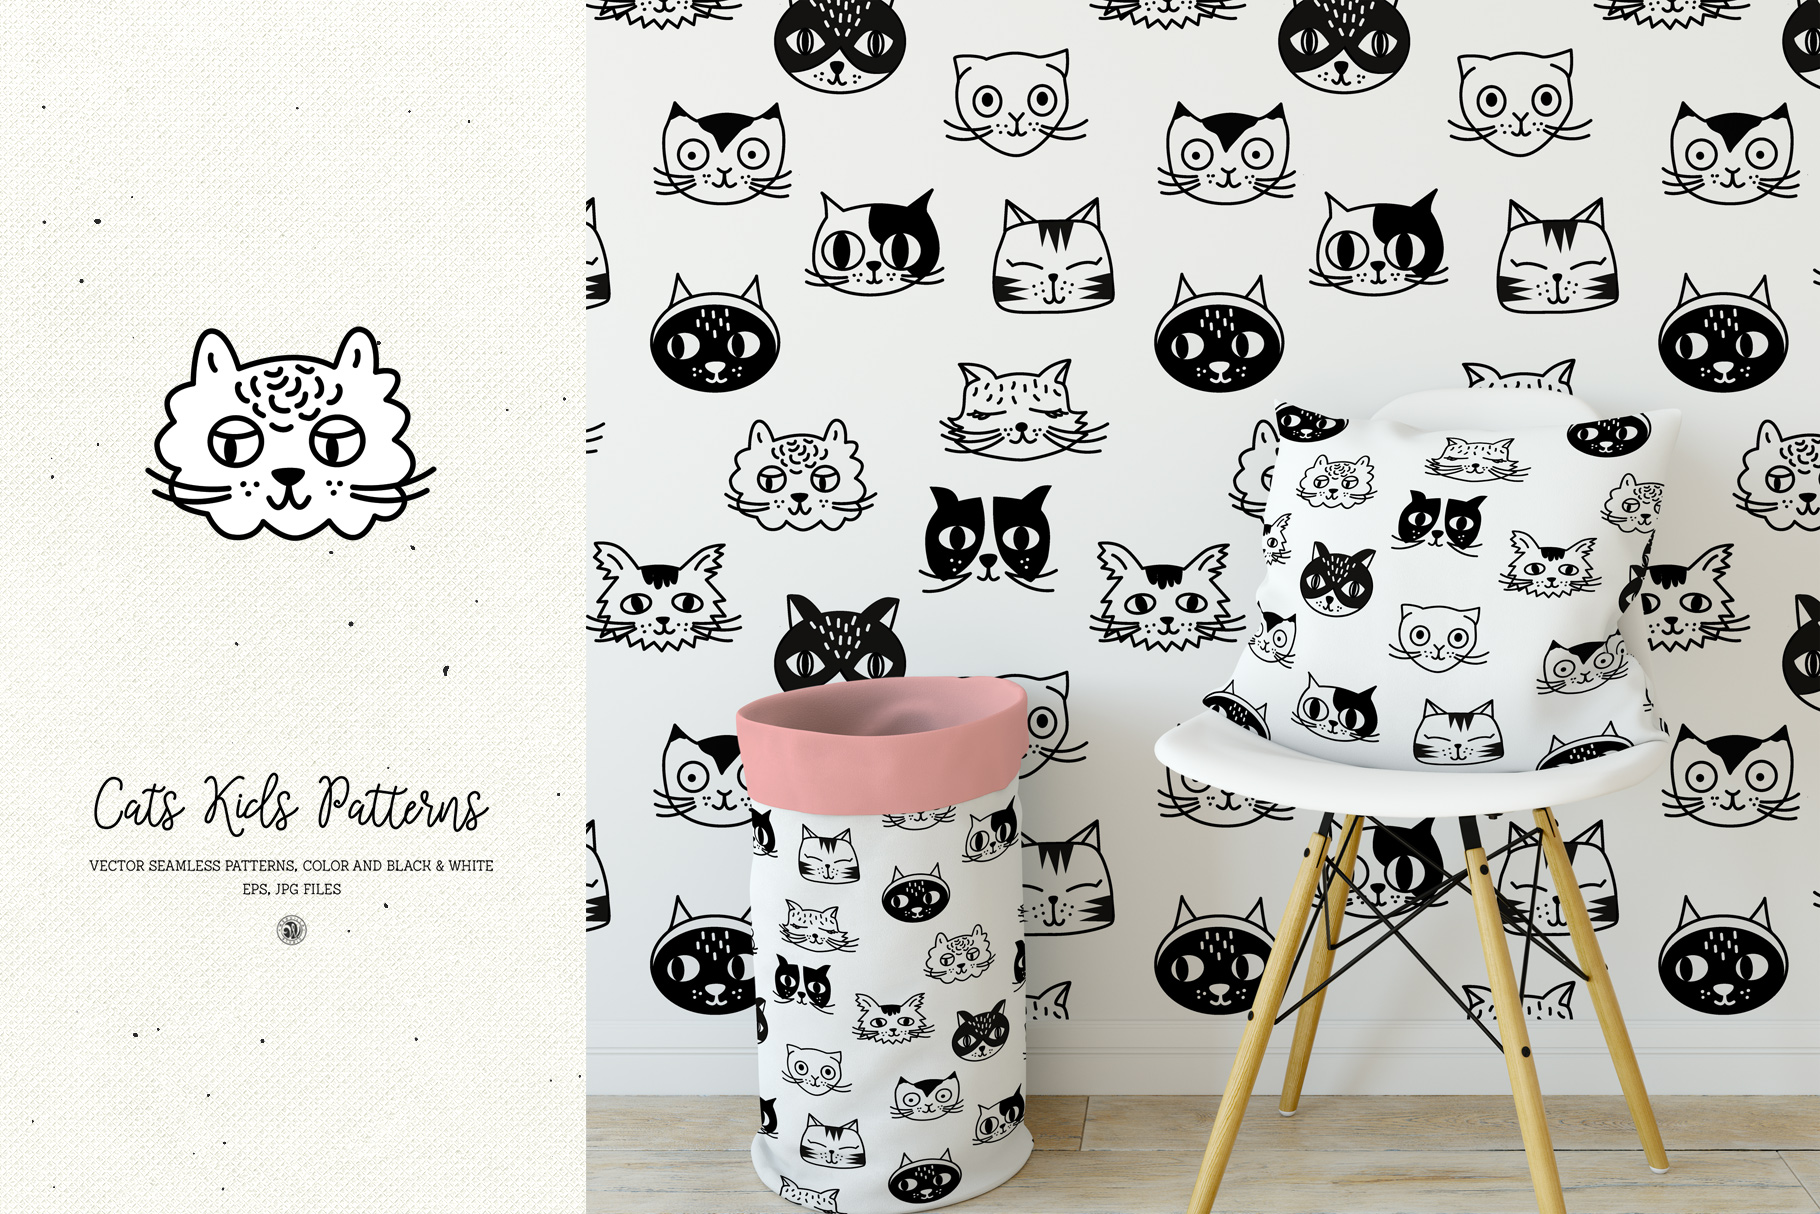 Cats Kids Patterns example image 2